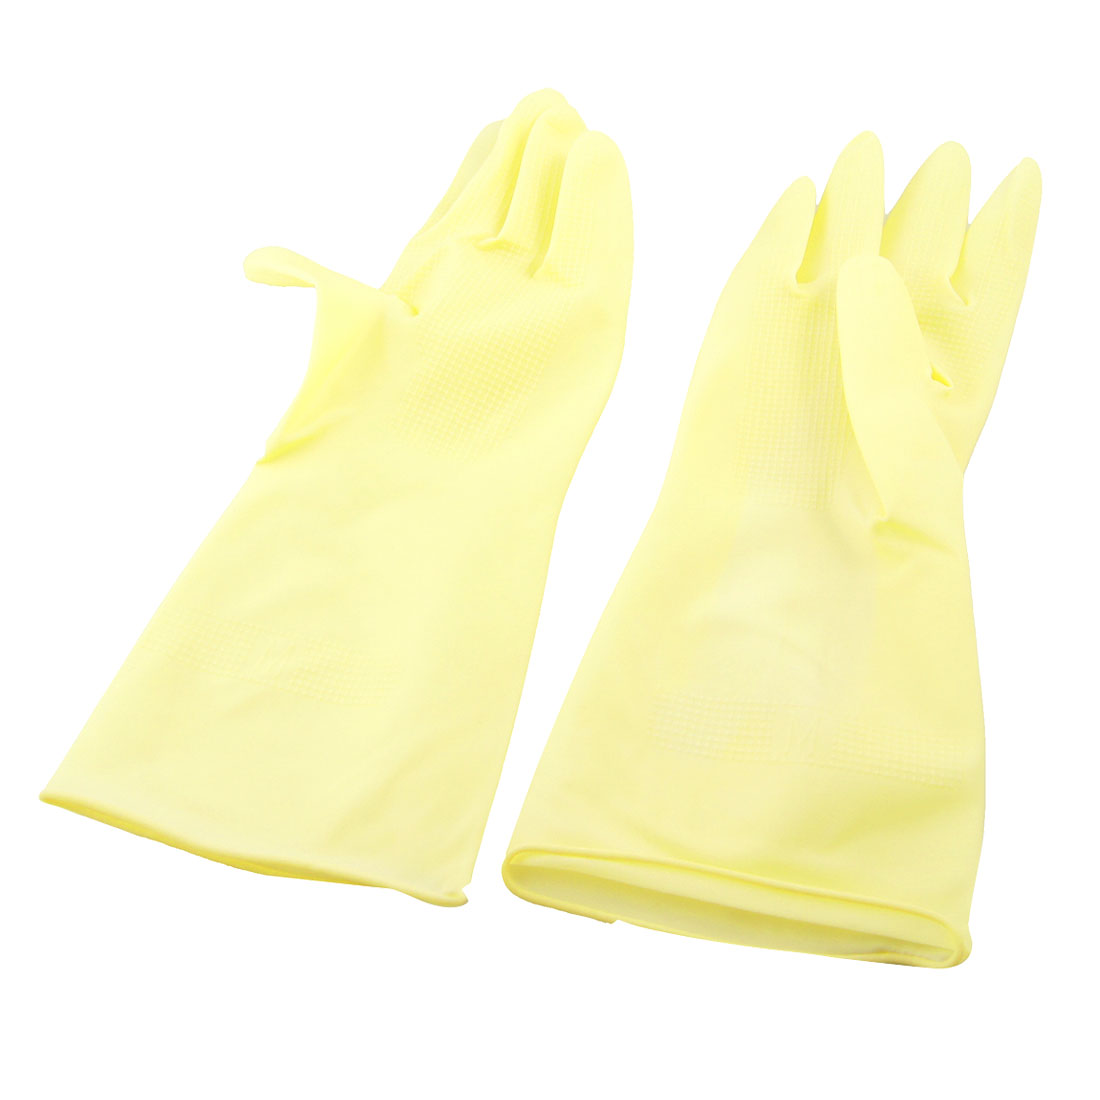 "Pair Industry Household Dish Clean Latex Work Gloves Yellow 11"" Length"